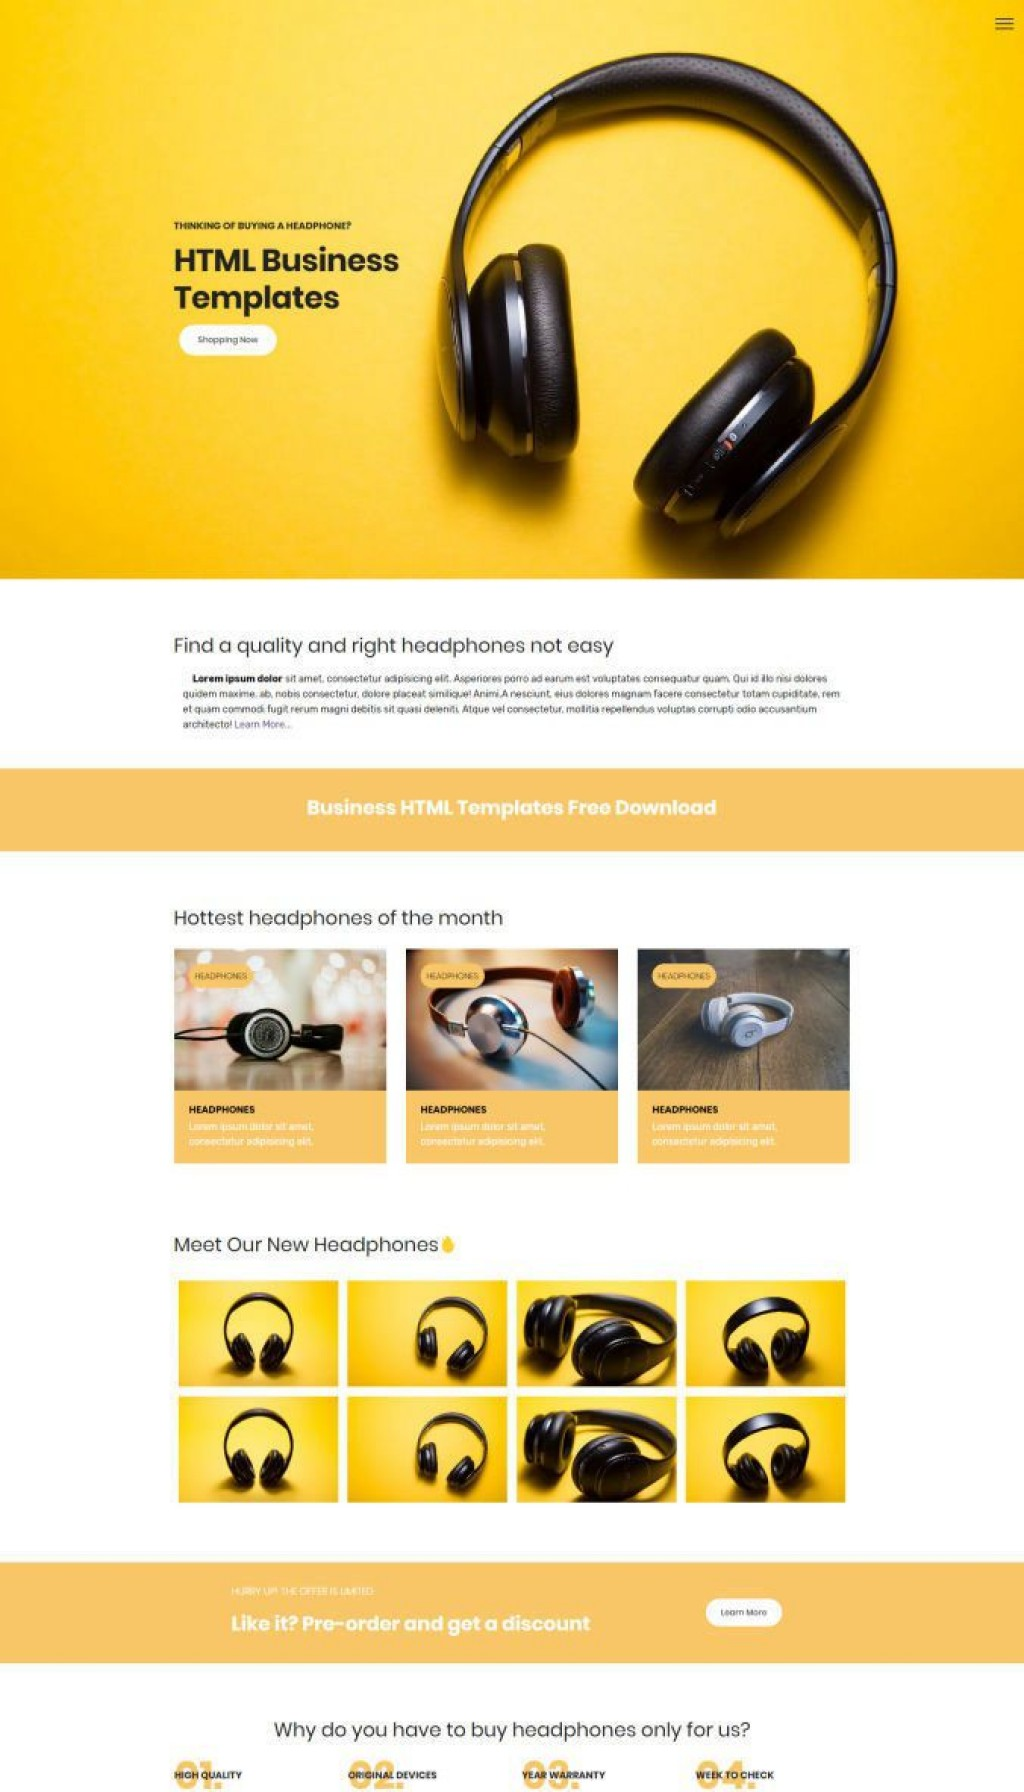 004 Archaicawful Website Template Html Free Download Image  Indian School Software Company SpiceLarge